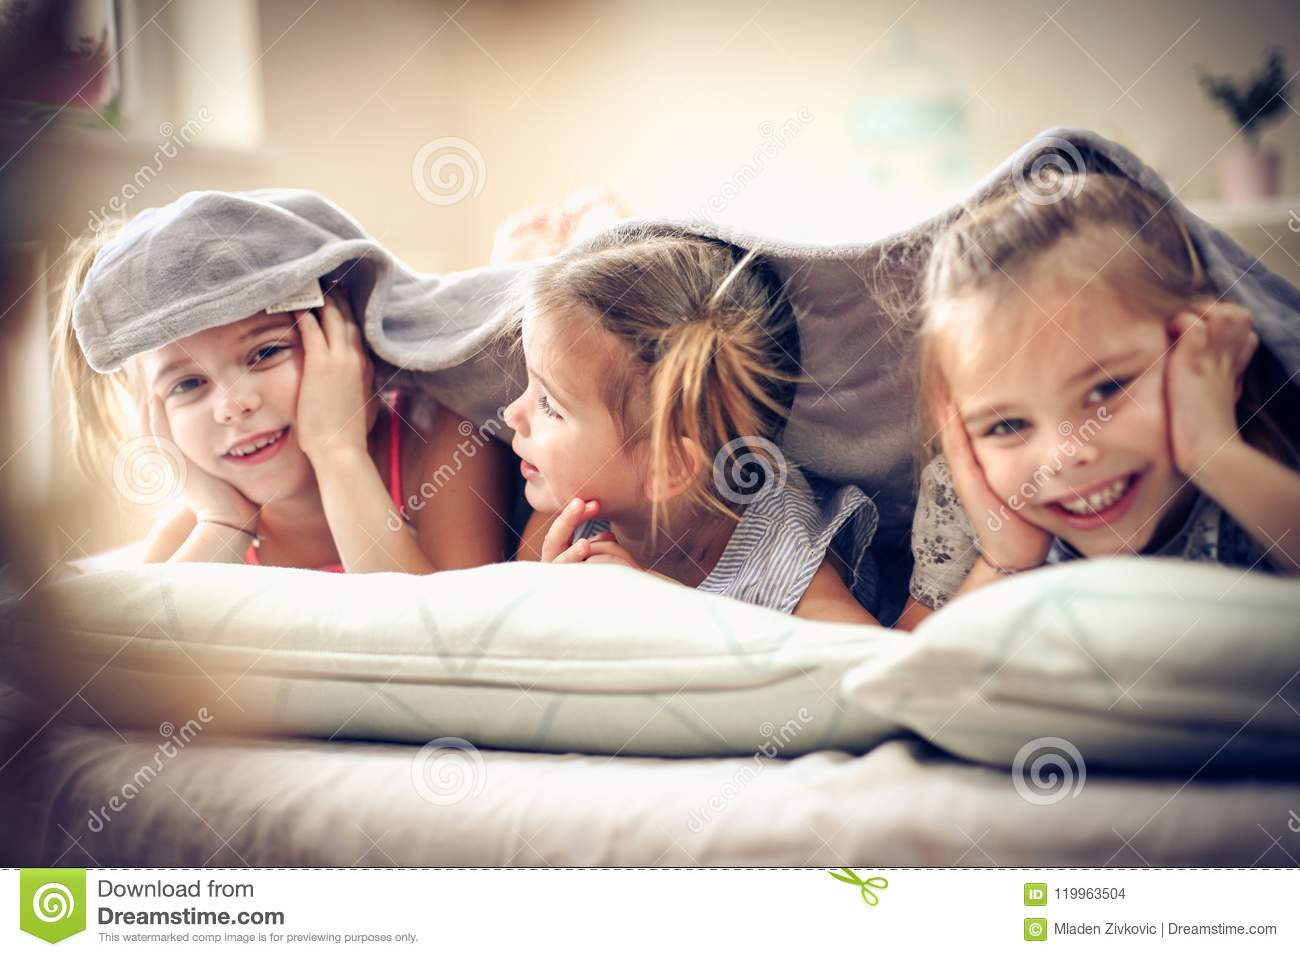 Smiling little girls in bed.